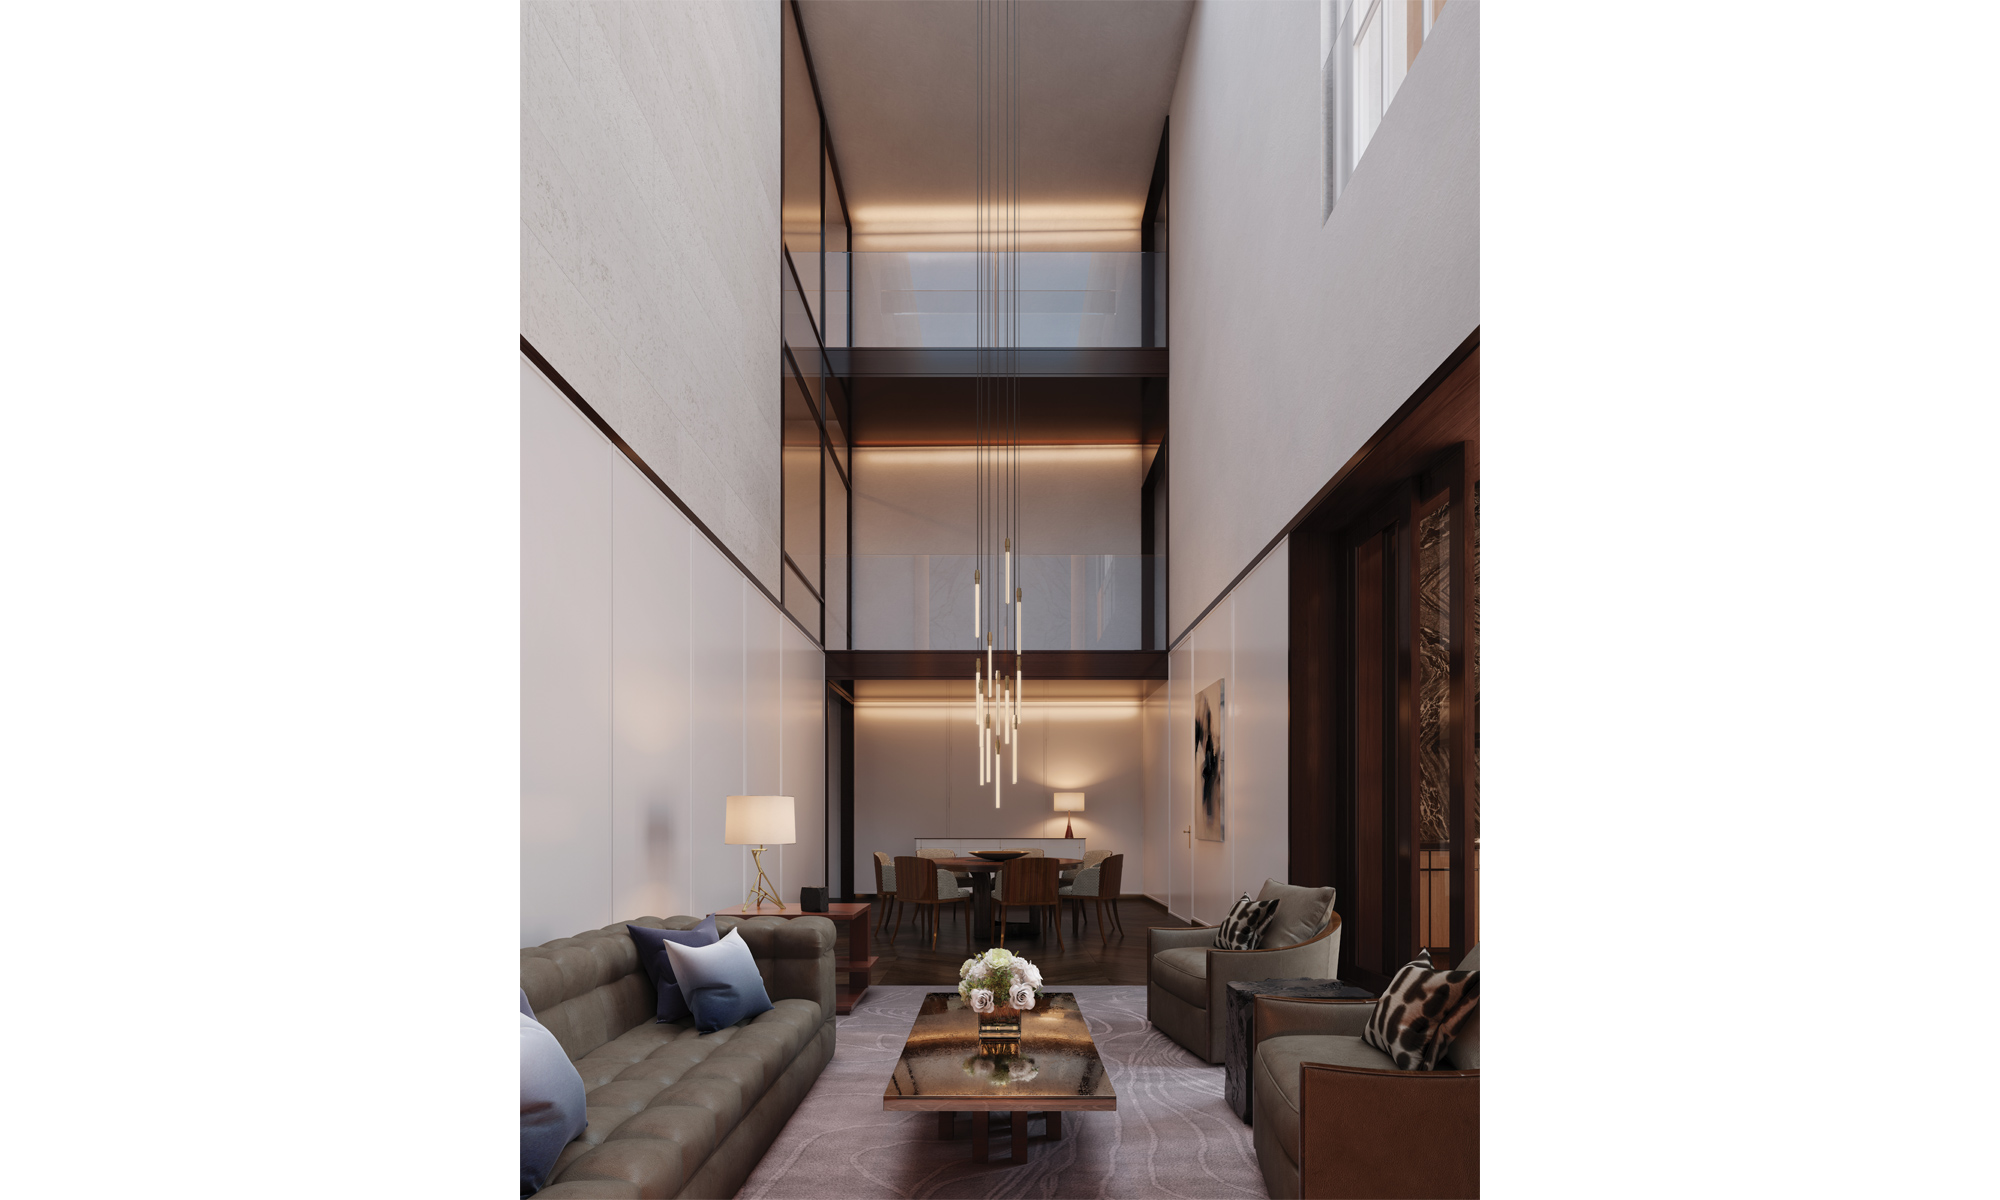 Artist's impression of an atrium reception with elevated glass walkways between bedrooms.